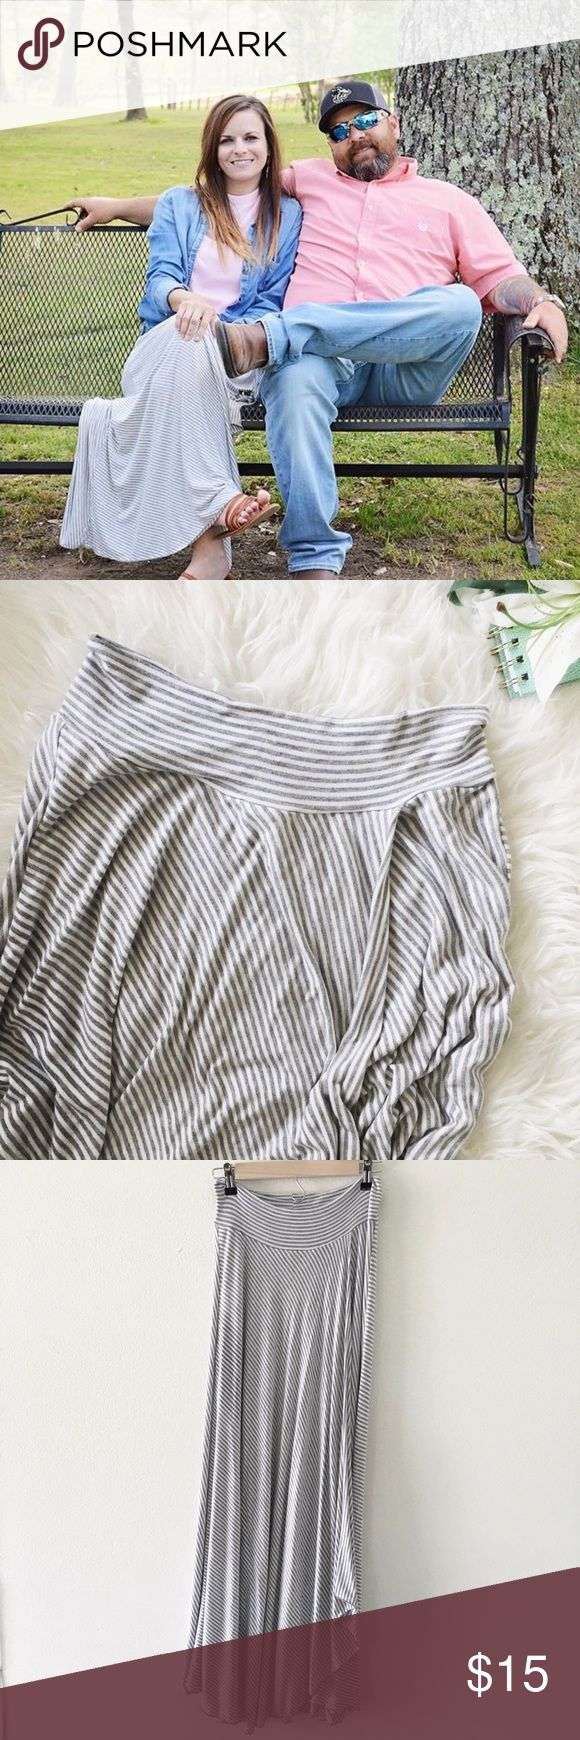 cato • gray + white striped maxi skirt 🛍: cato  ▫️Gary + white striped maxi skirt ▫️it has a couple of layers wrapping over each other  ▫️stretchy - can fold top down  ▫️size: x-small  ▫️condition: gentle preloved condition; worn on Easter and washed once  •please read description & ask questions before purchasing• •no trades• Cato Skirts Maxi